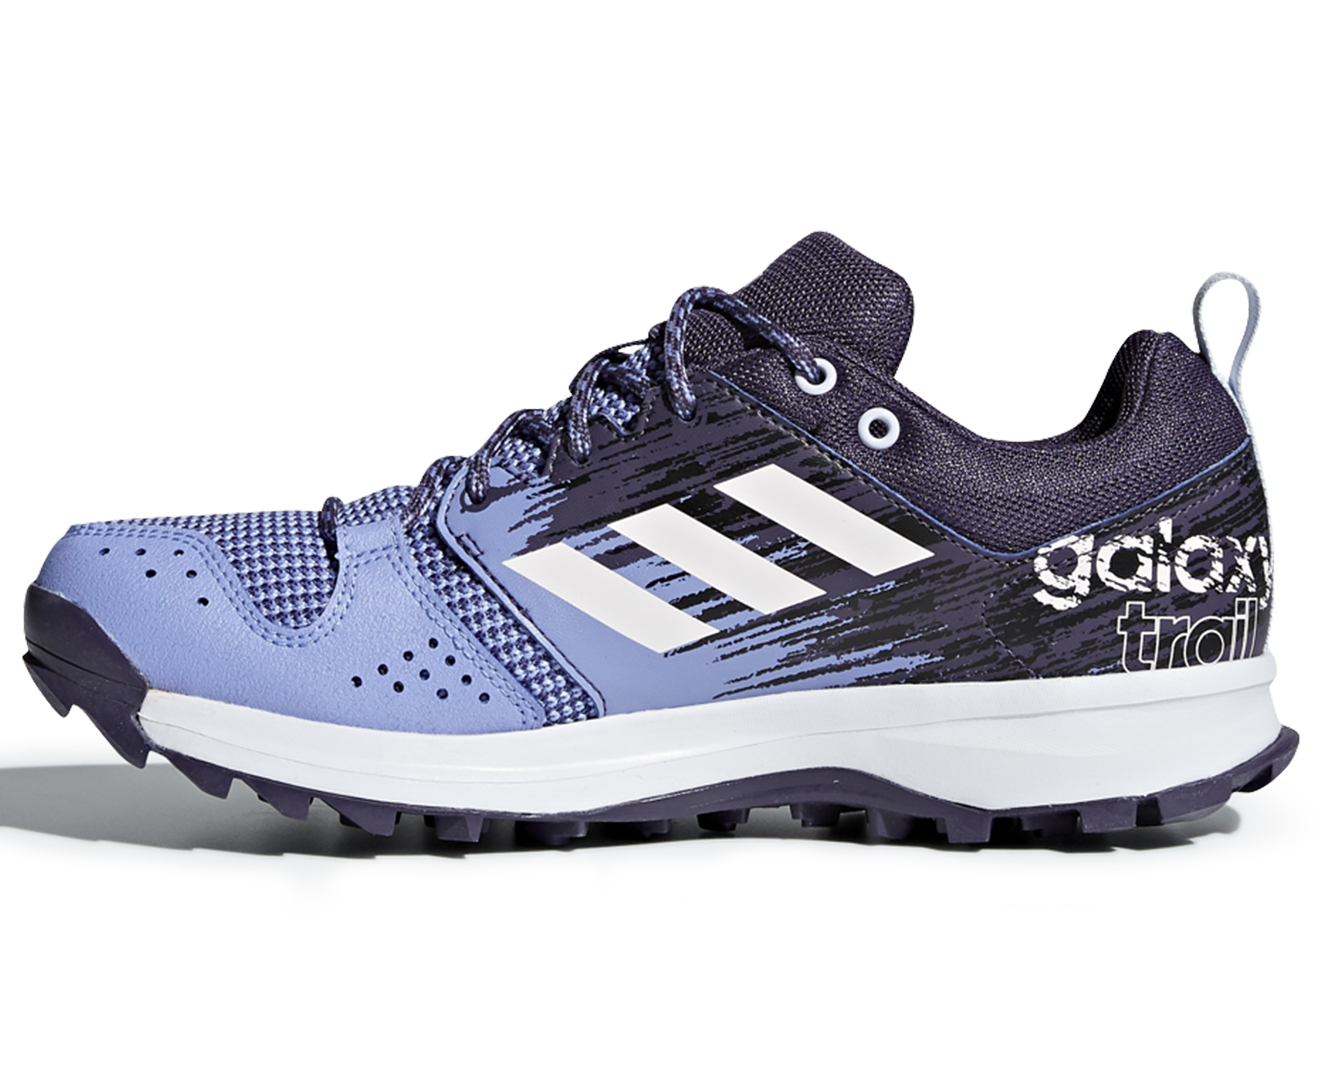 Adidas Women's Galaxy Trail Running Sneakers Shoes